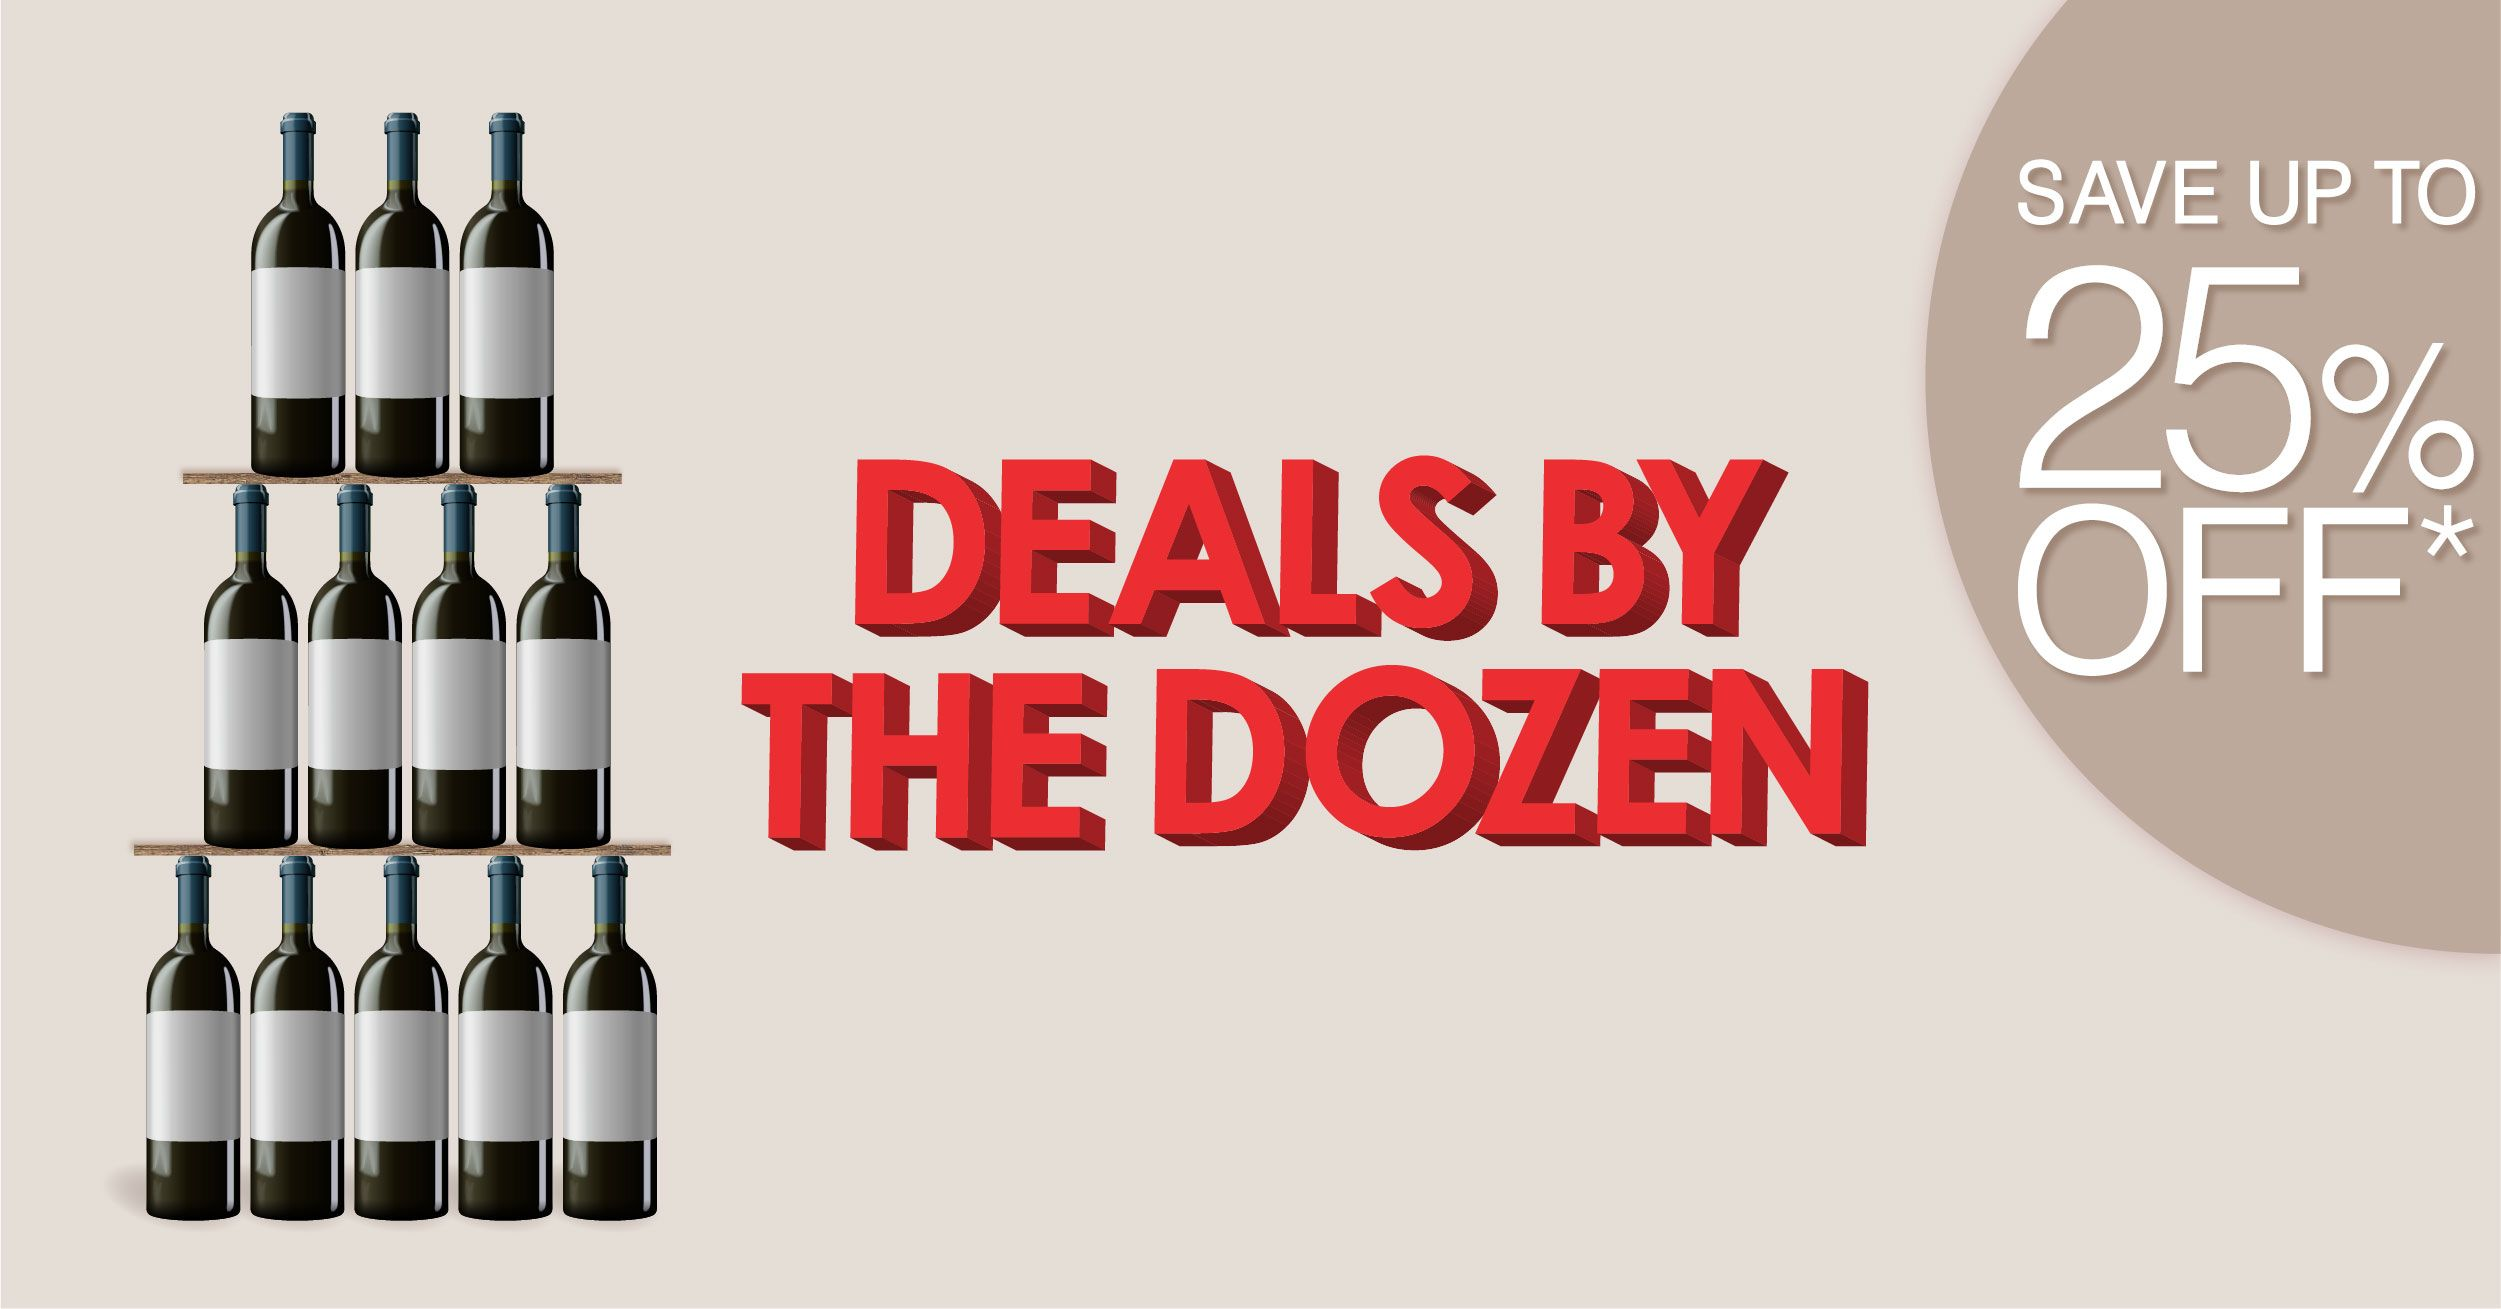 Enjoy Deals Of Up To 25 Discount When You Purchase A Dozen Wines Bulk Offers Like Never Before Shop Now At Wine Conn Buy Wine Online Wine Delivery Wine Deals